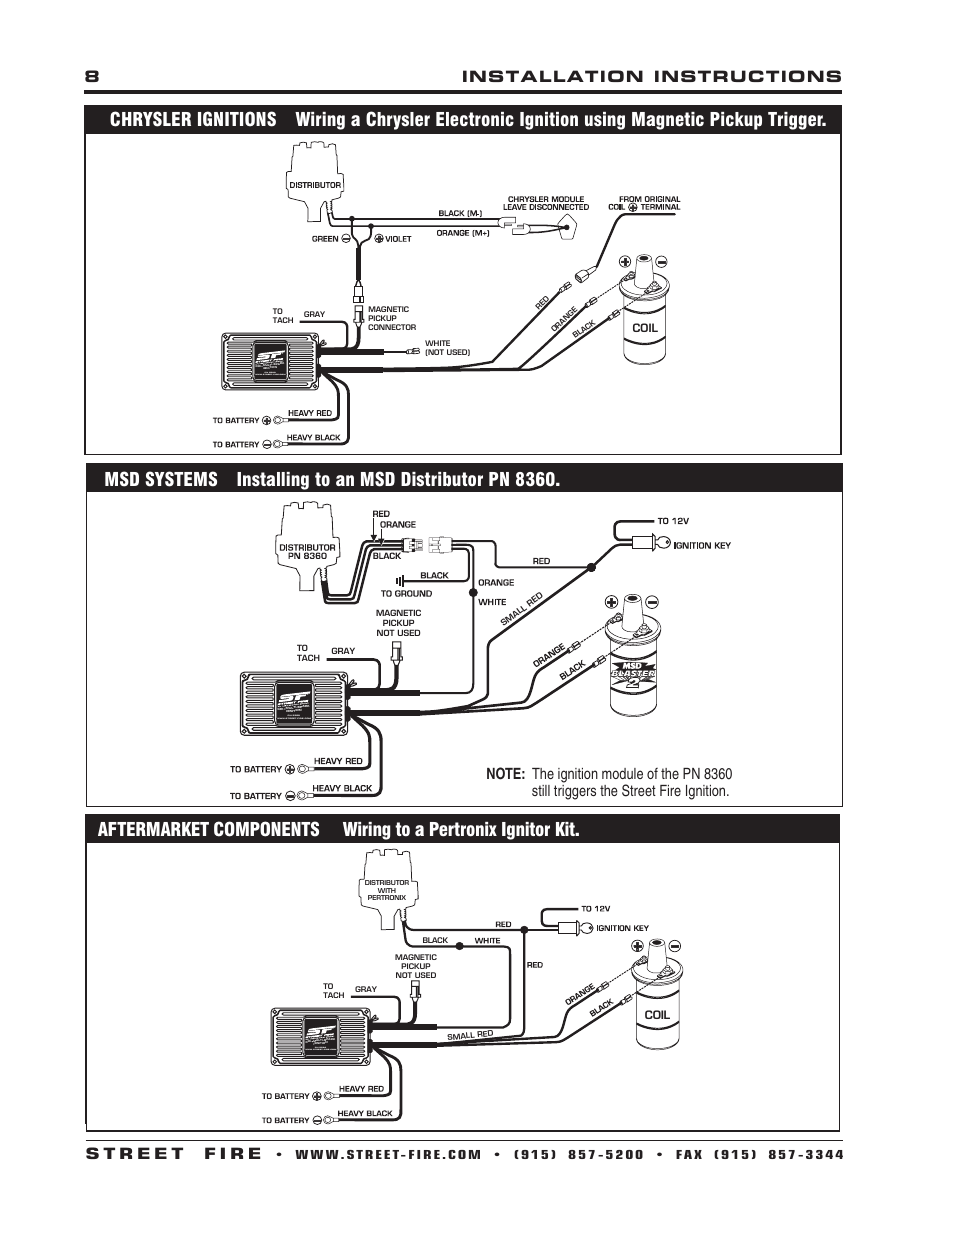 Avcr Wiring Diagram: Great Apexi Avcr Wiring Diagram Images - Electrical and Wiring ,Design